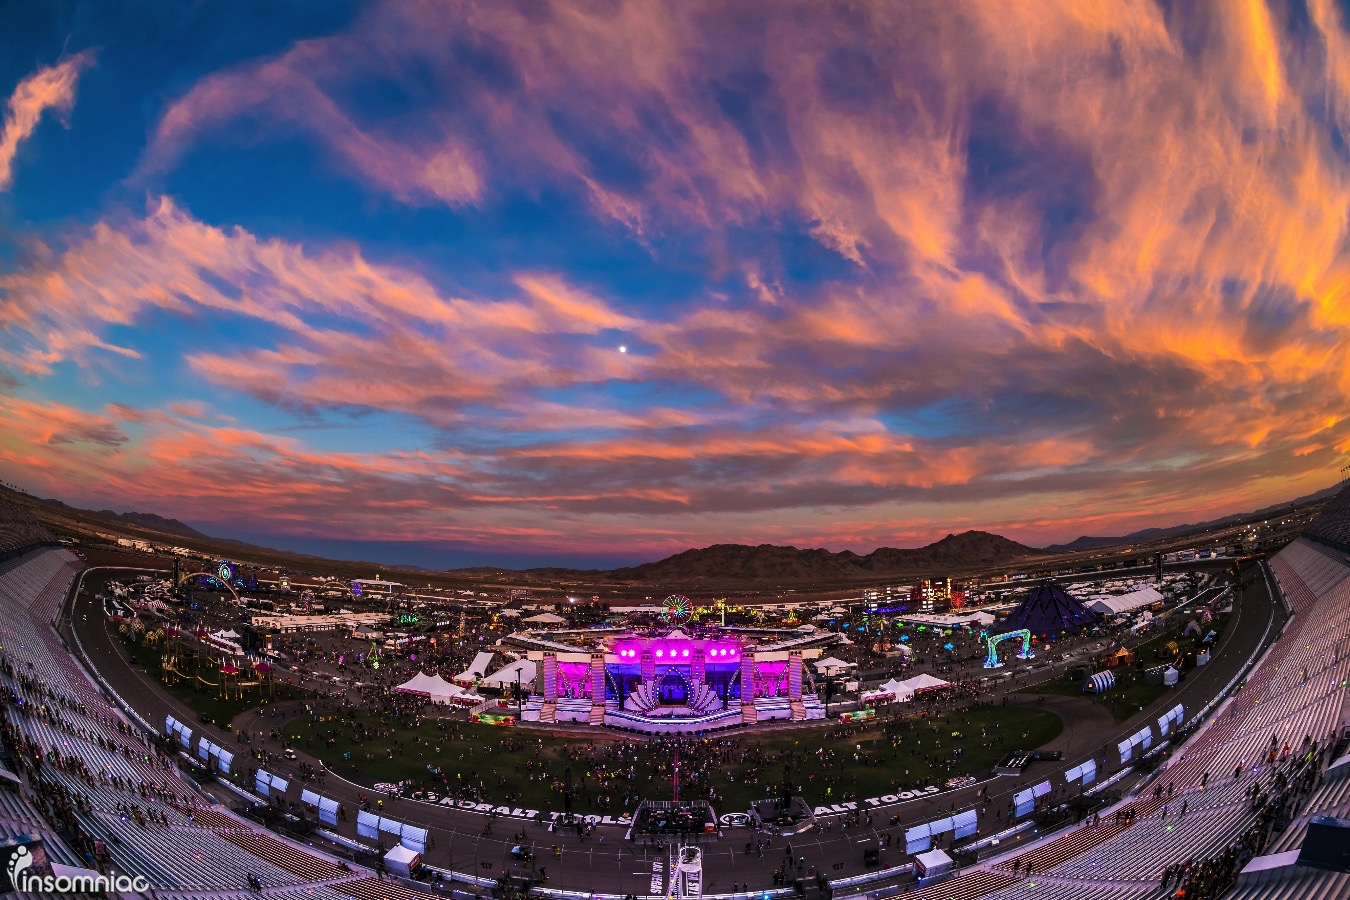 4 Reasons Why EDC Las Vegas Continues To Amaze Me